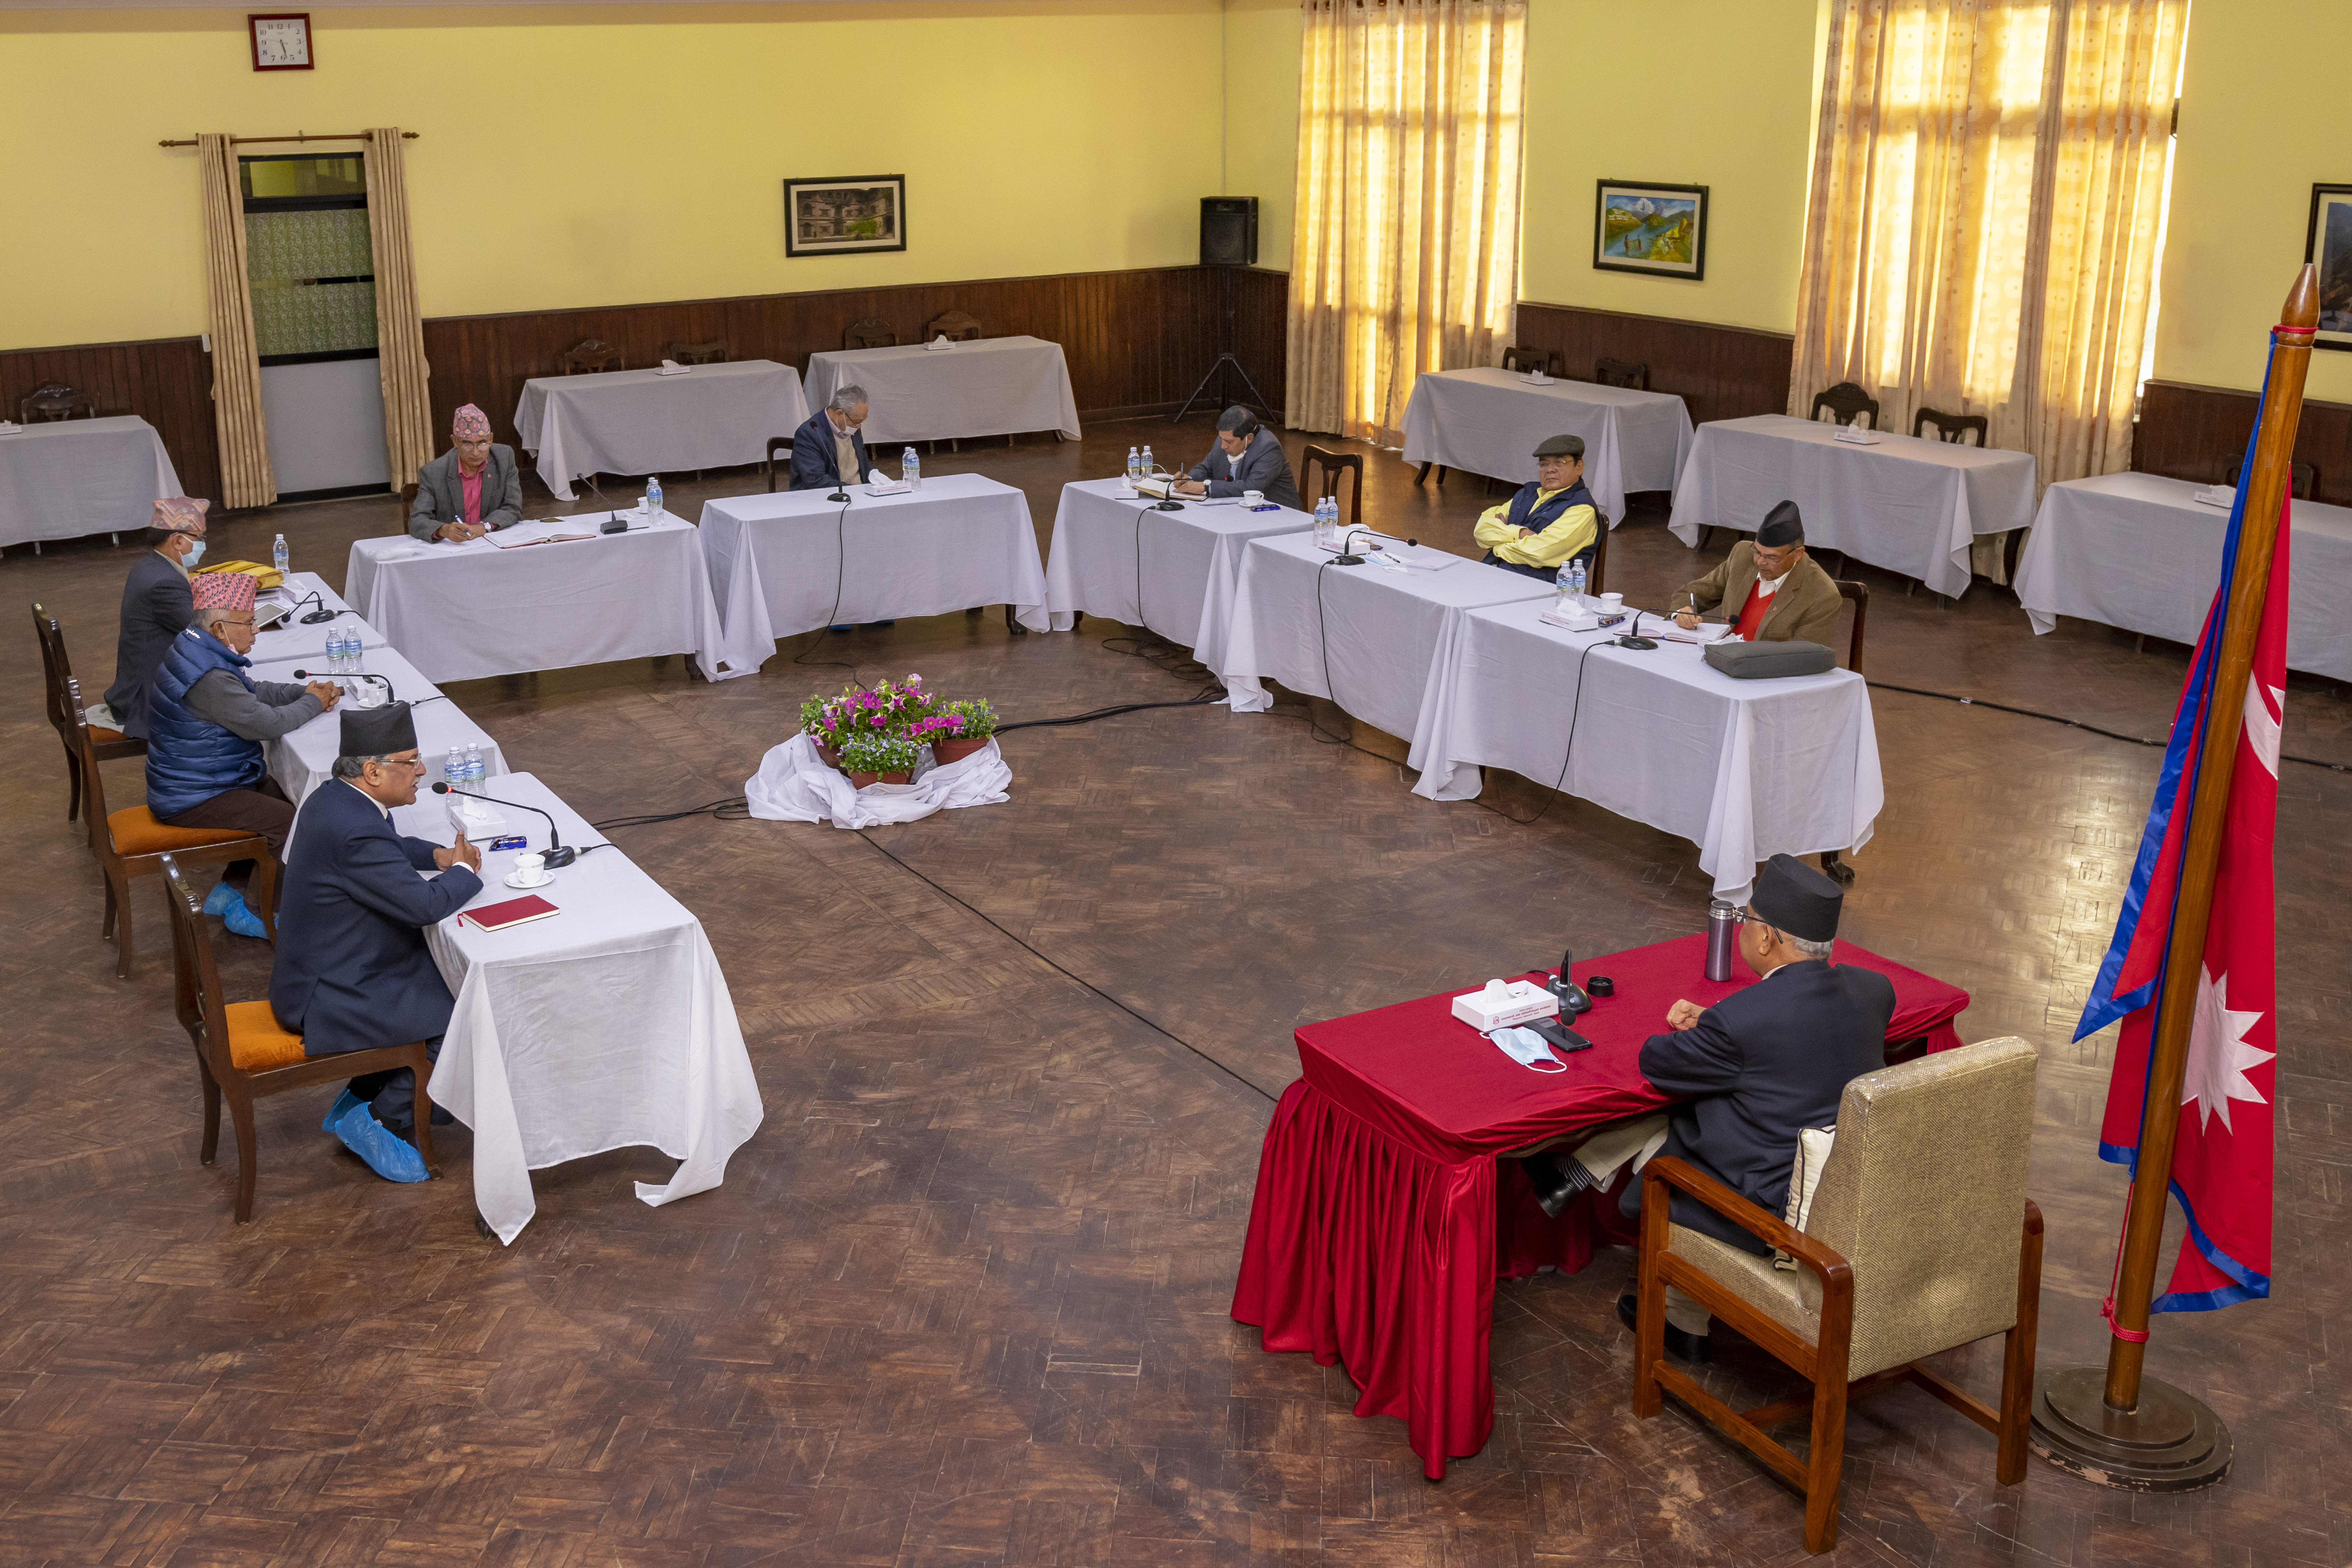 Nepal Communist Party (NCP) Central Secretariat Meeting, being held on Wednesday, April 29, 2020. Photo Courtesy: Rajan Kafle/Prime Minister's Secretariat